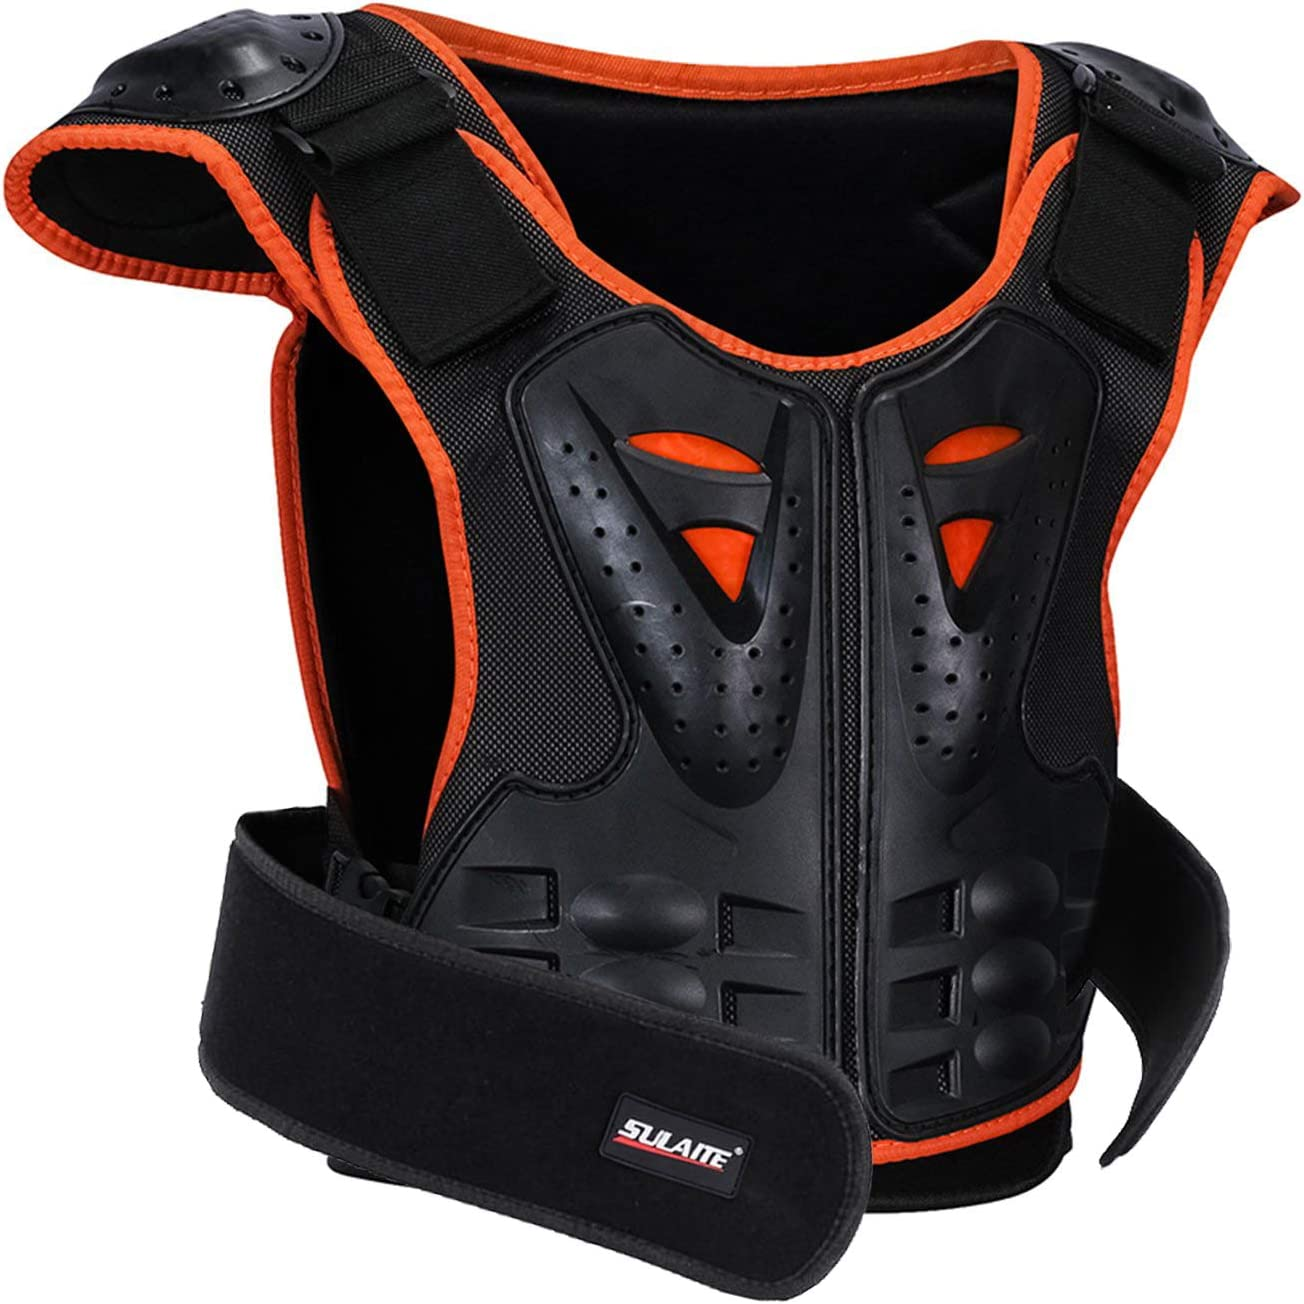 GuTe Kids Bike Chest Protector, Sport Motocross Skiing Armor Vest Spine Protective Gear